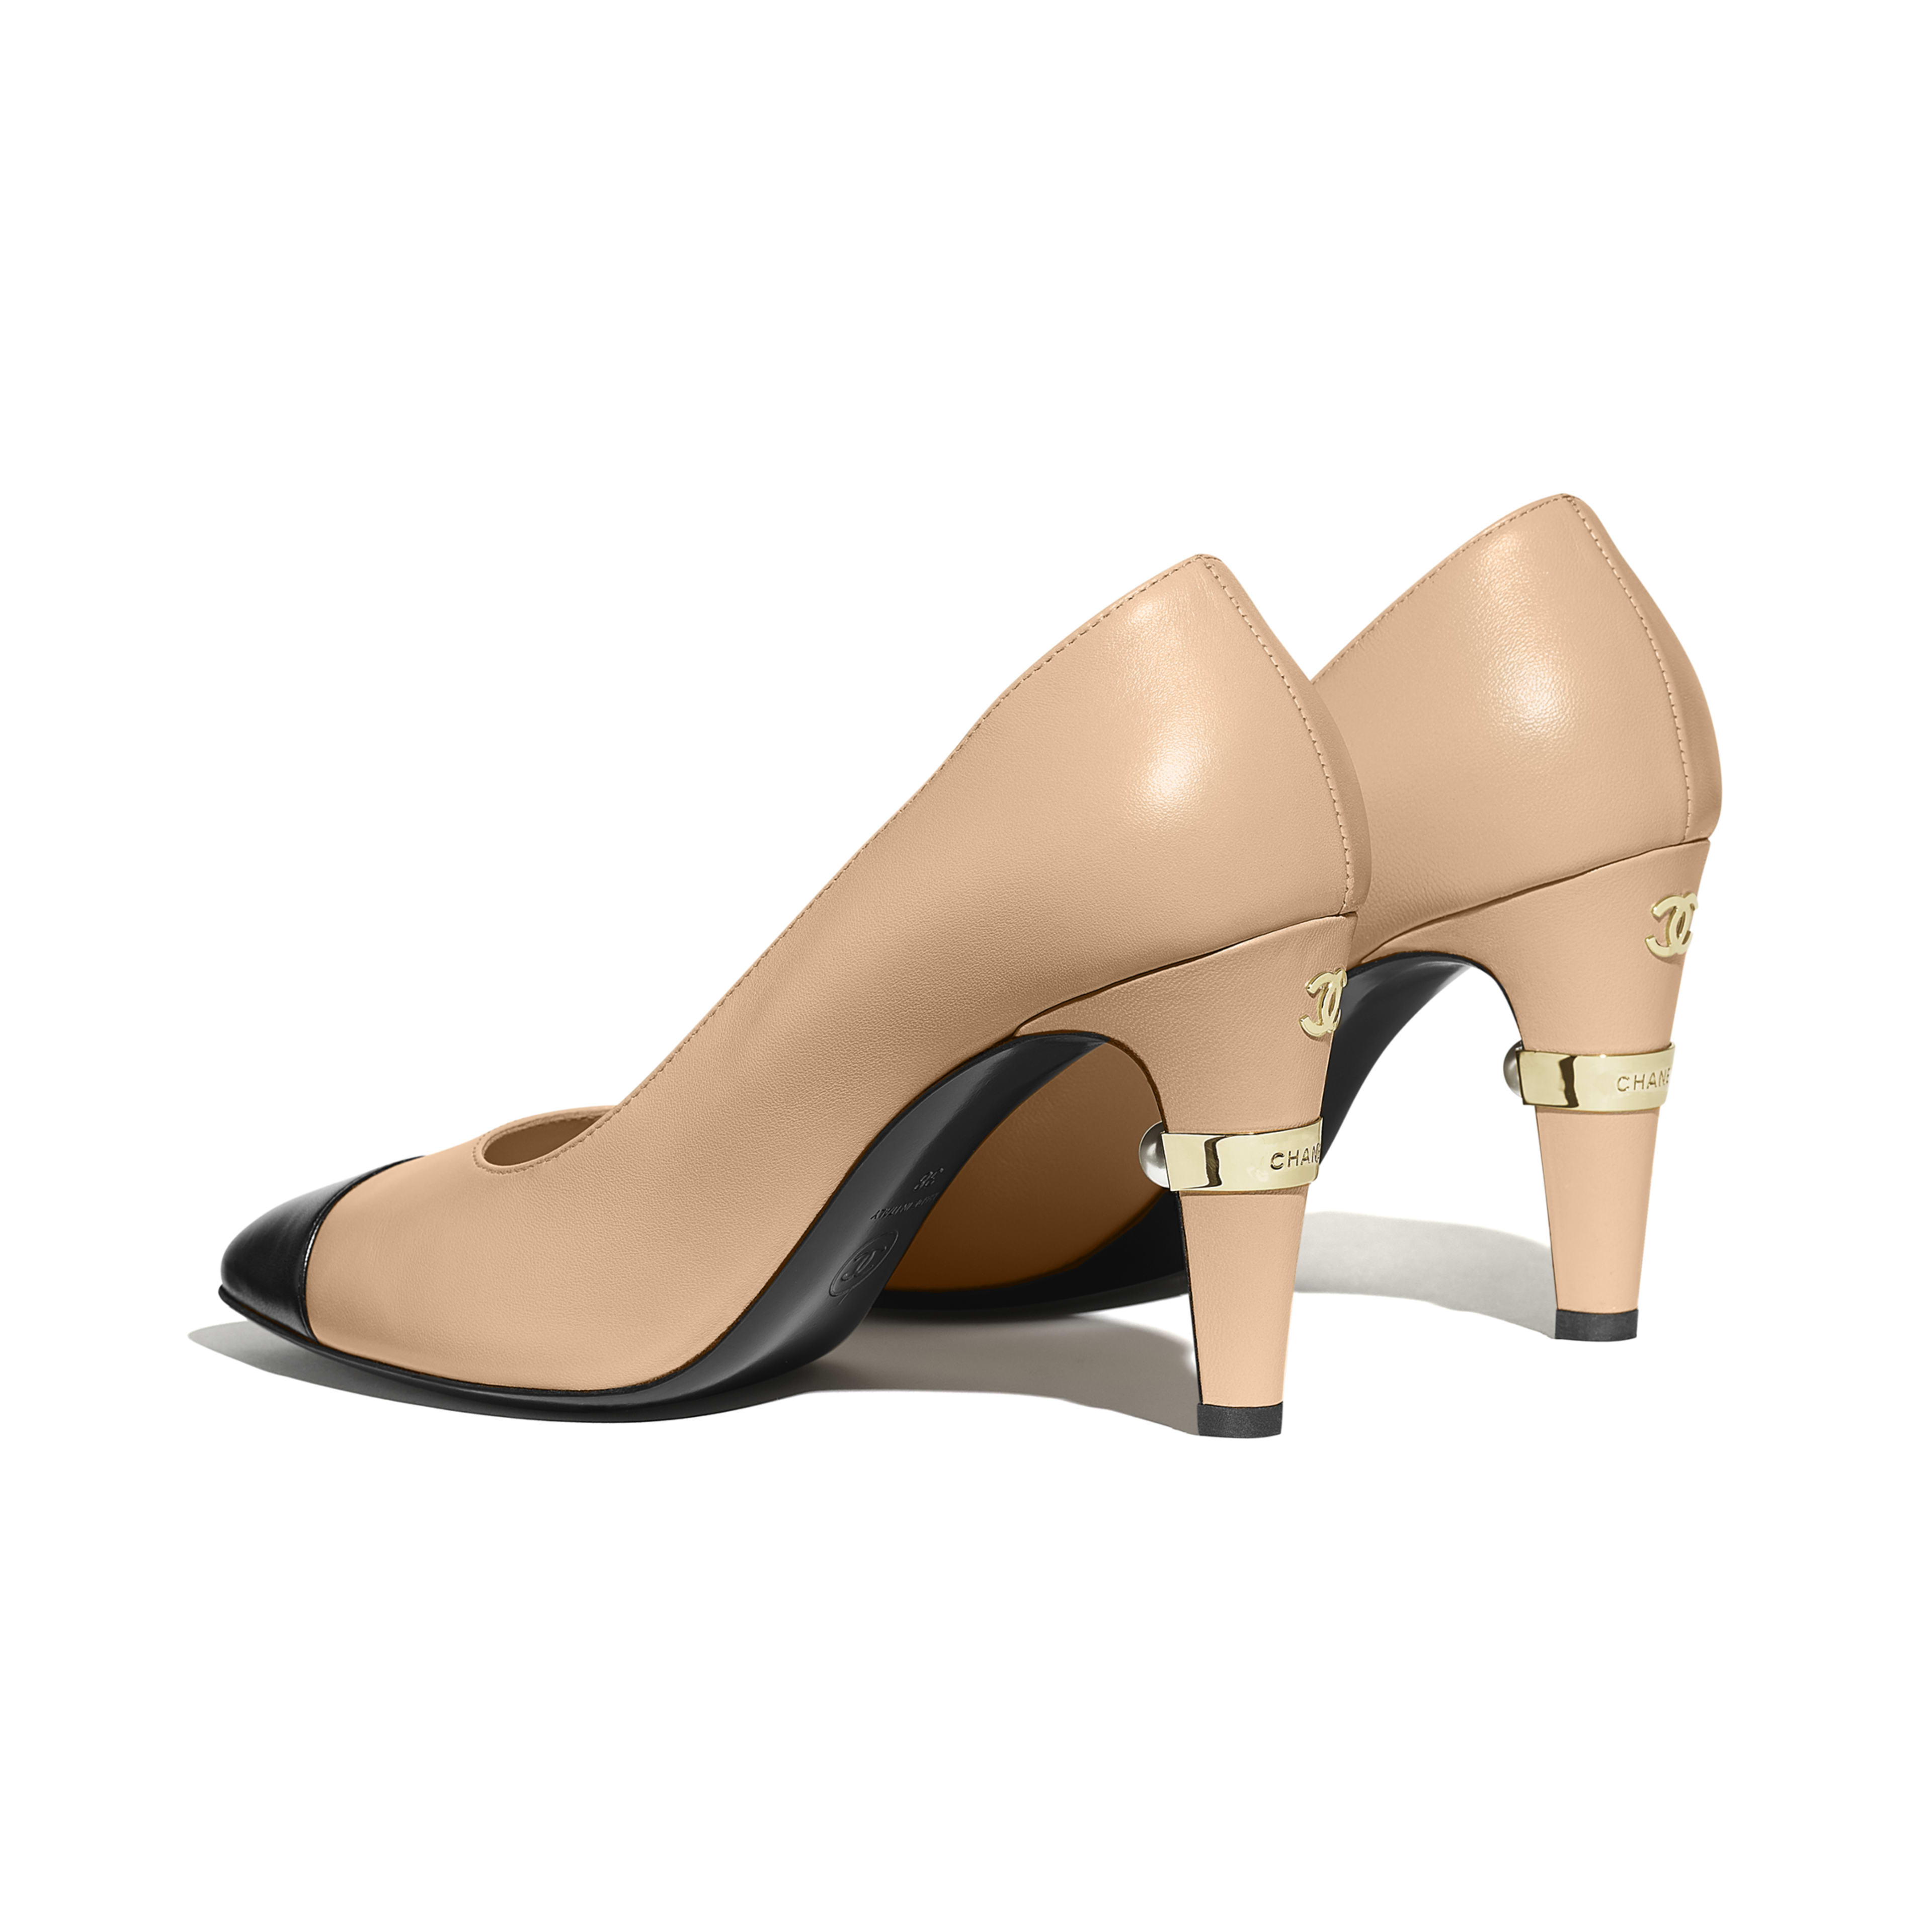 Pumps - Beige & Black - Lambskin - Other view - see full sized version